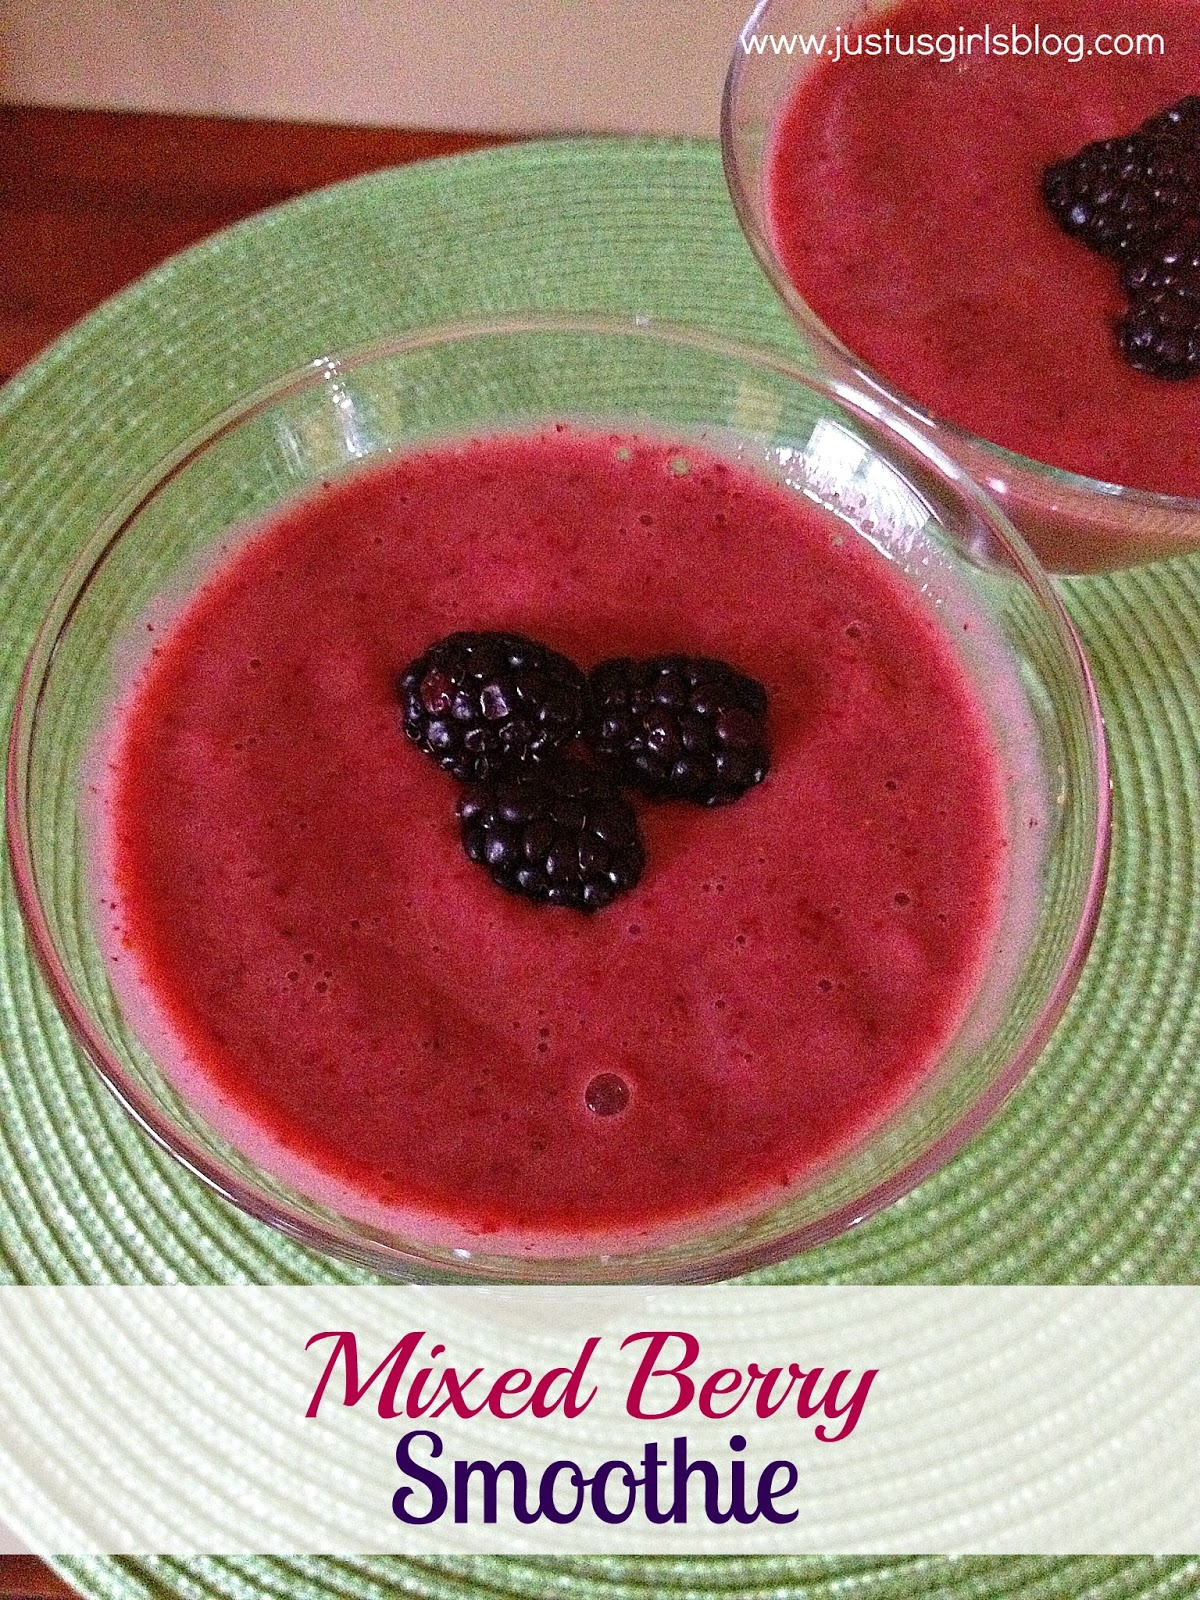 Just Us Girls: Thirsty Thursday: Mixed Berry Smoothie